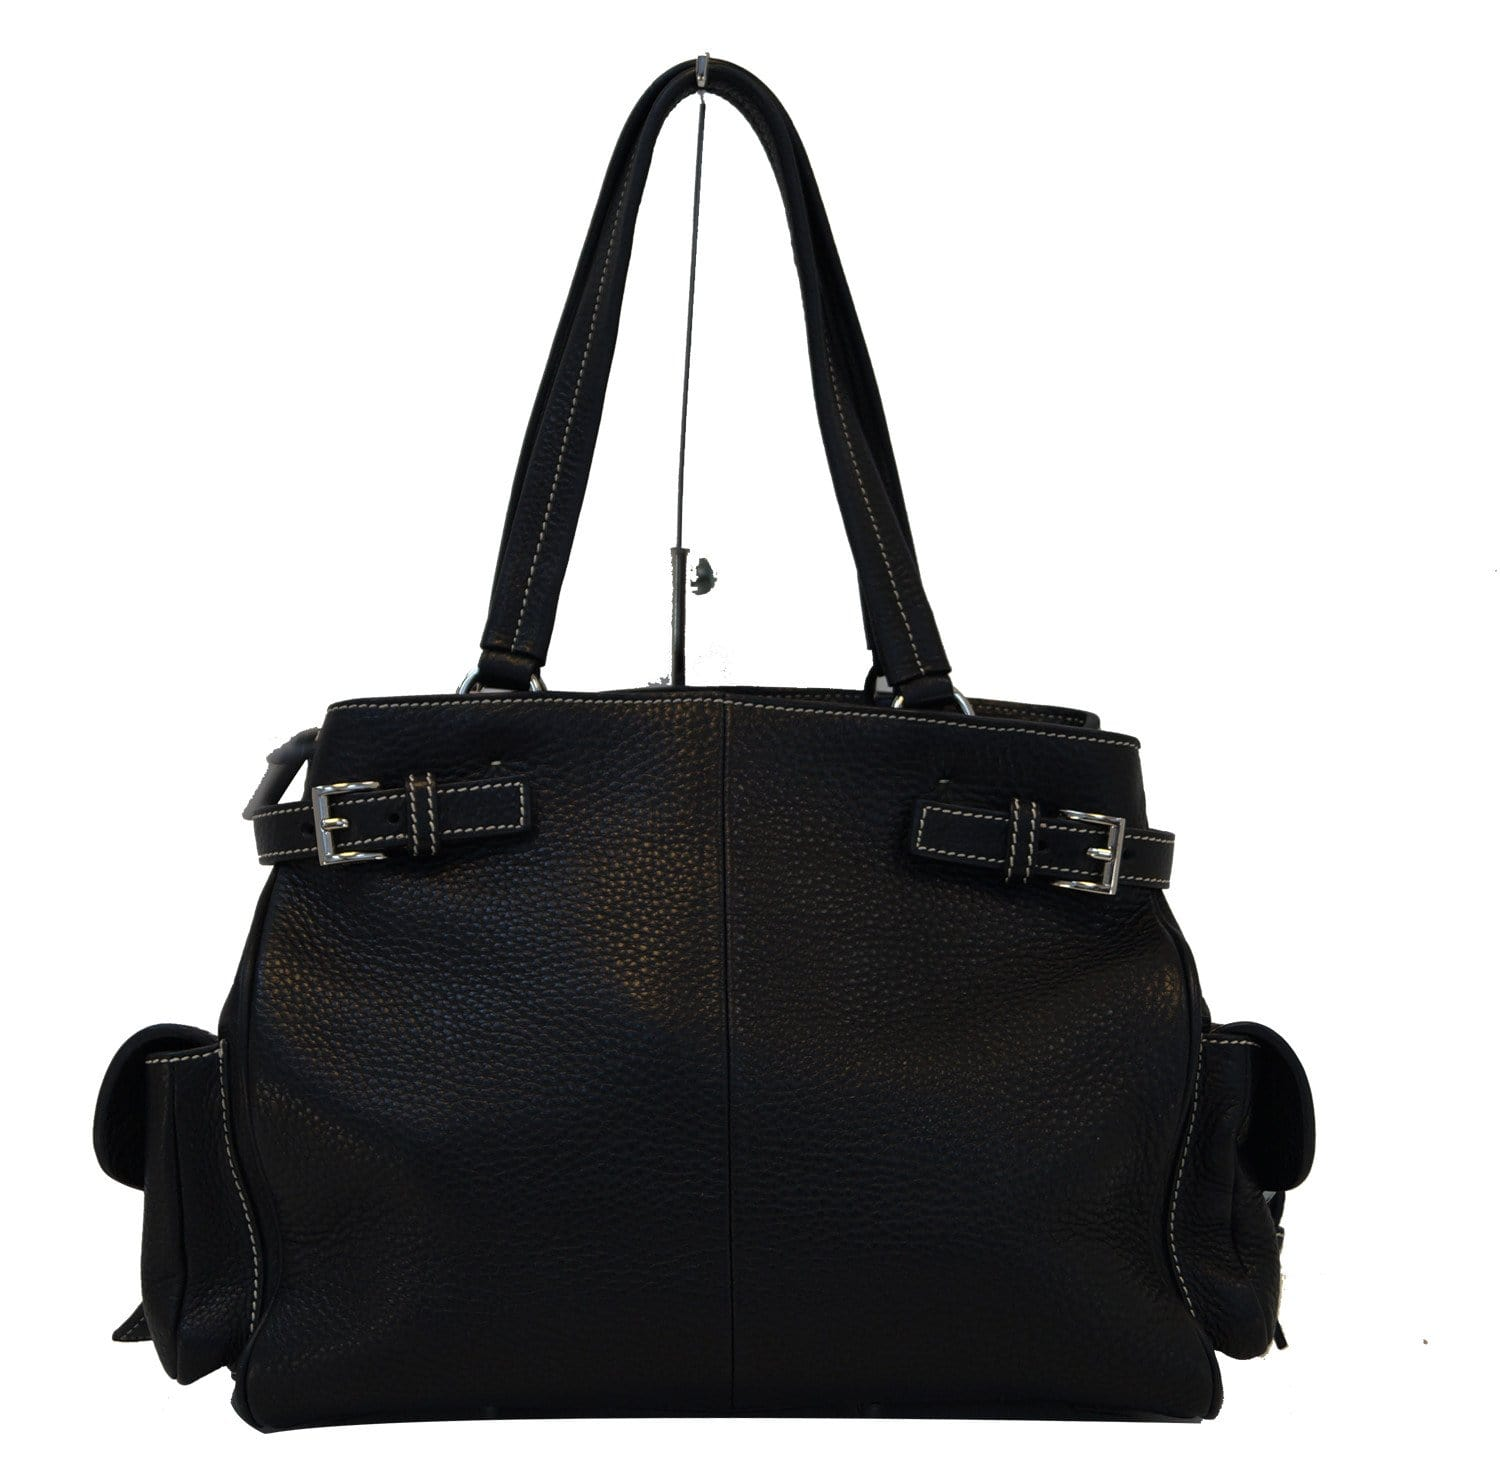 bdd43bbafe Authentic Prada Vitello Daino Black Calfskin Leather Shoulder Bag ...